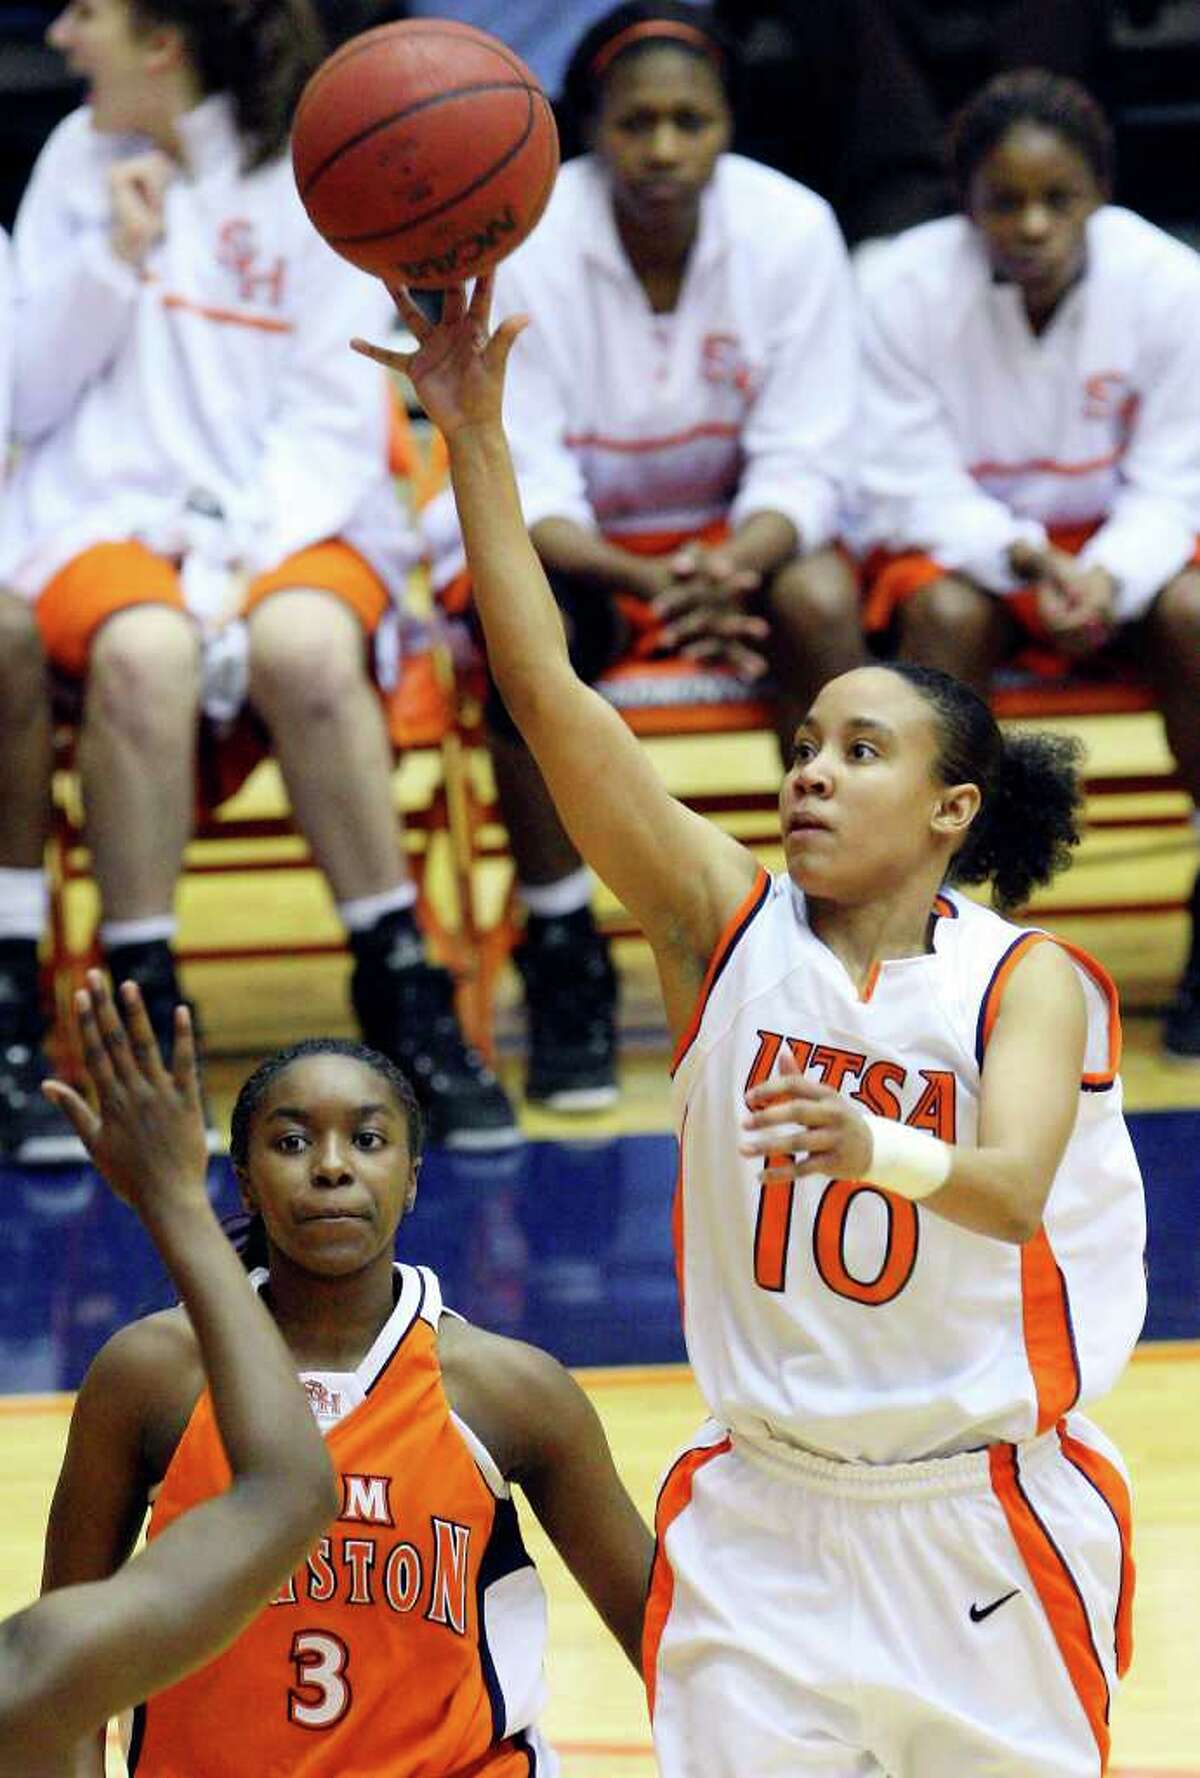 FOR SPORTS - UTSA's Amber Gregg shoots around Sam Houston State's Jasmine Johnson during first half action Saturday Jan. 29, 2011 at the Convocation Center. (PHOTO BY EDWARD A. ORNELAS/eaornelas@express-news.net)